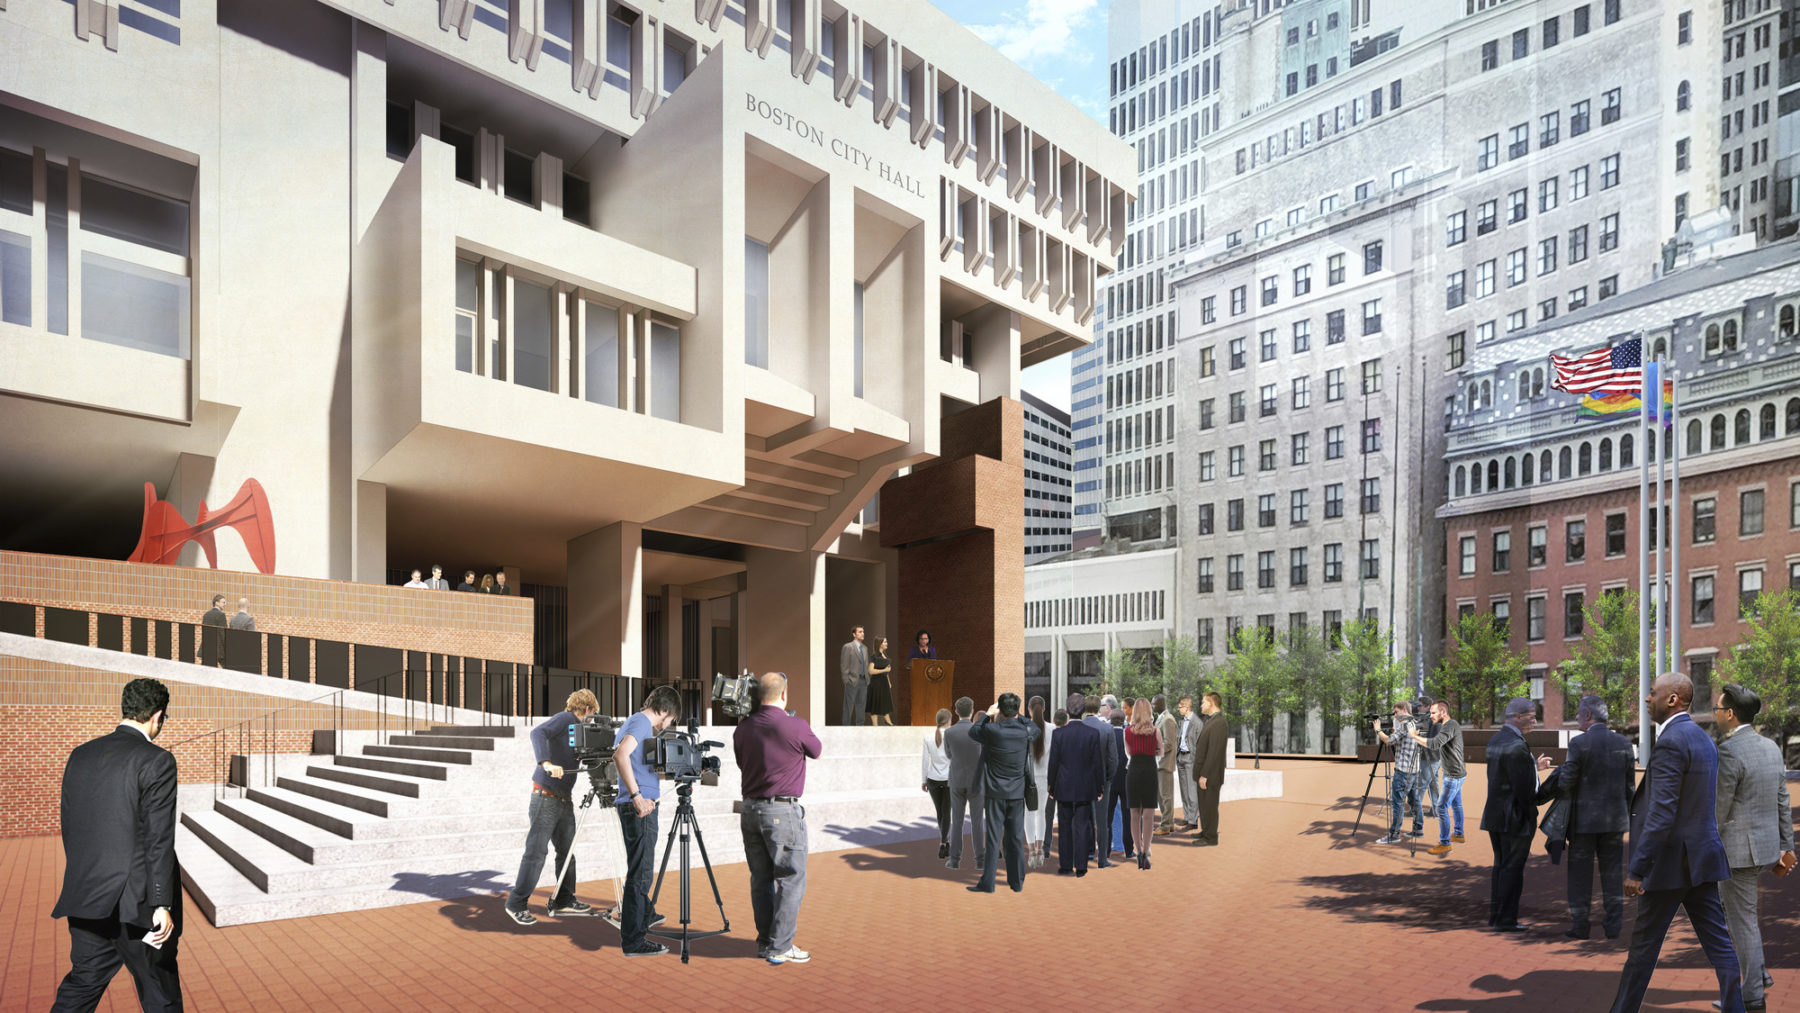 rendering of person speaking at a podium in boston city hall plaza